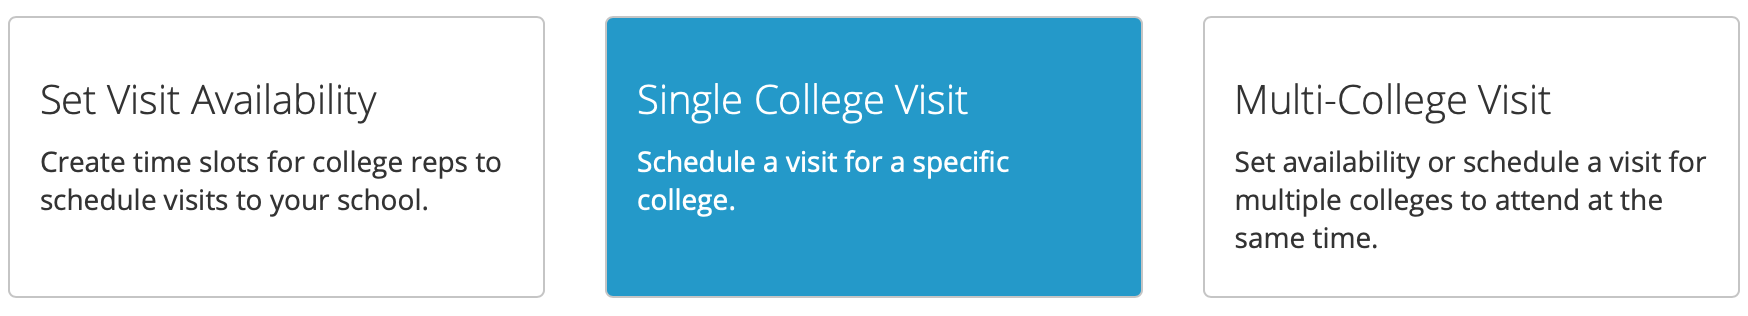 _counselor_-calendar-schedule-visit-single-college.png